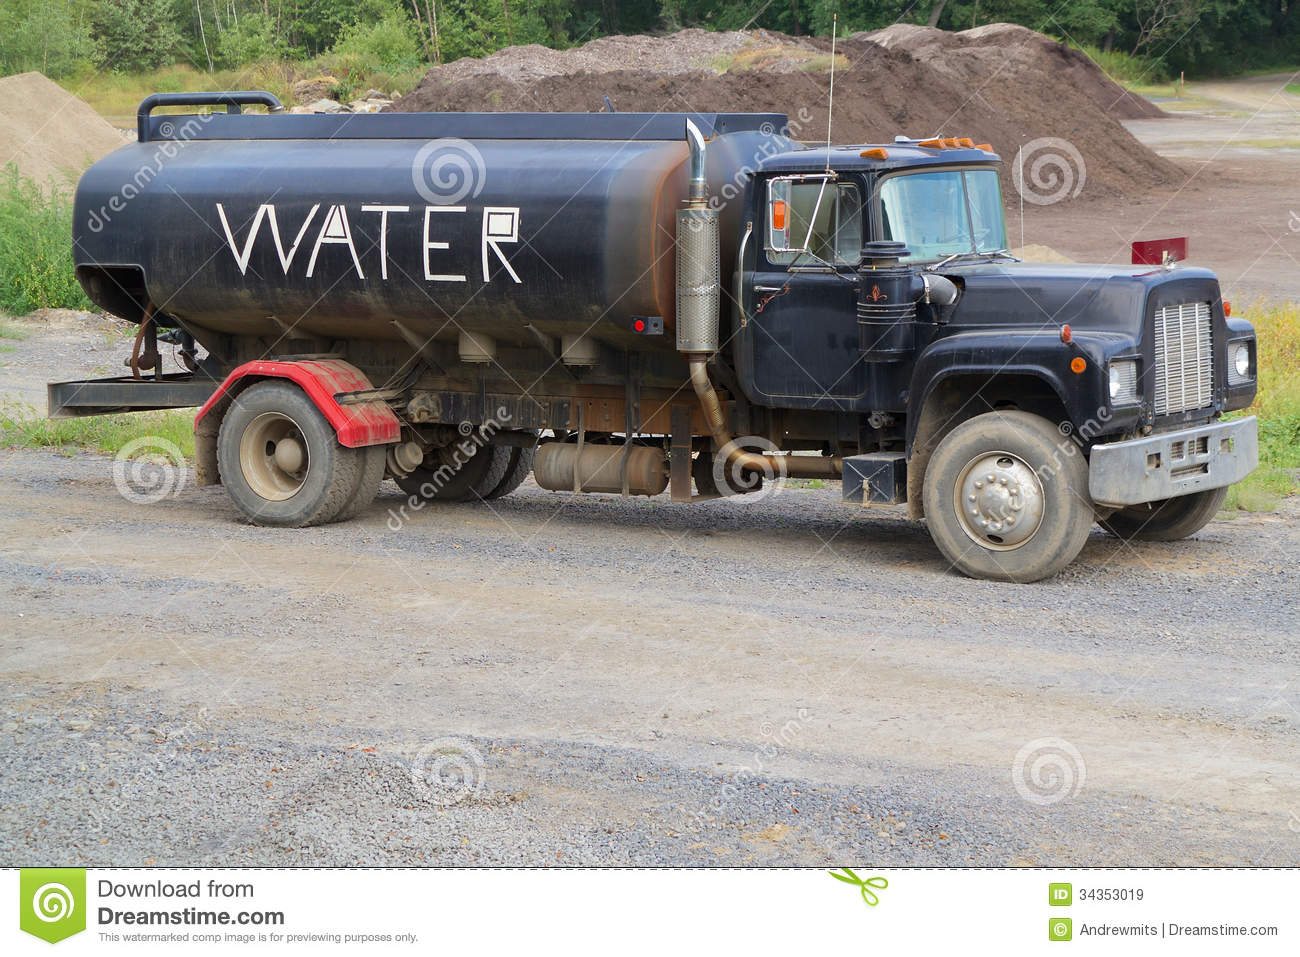 Why Are Water Trucks Labeled As Such Off Topic